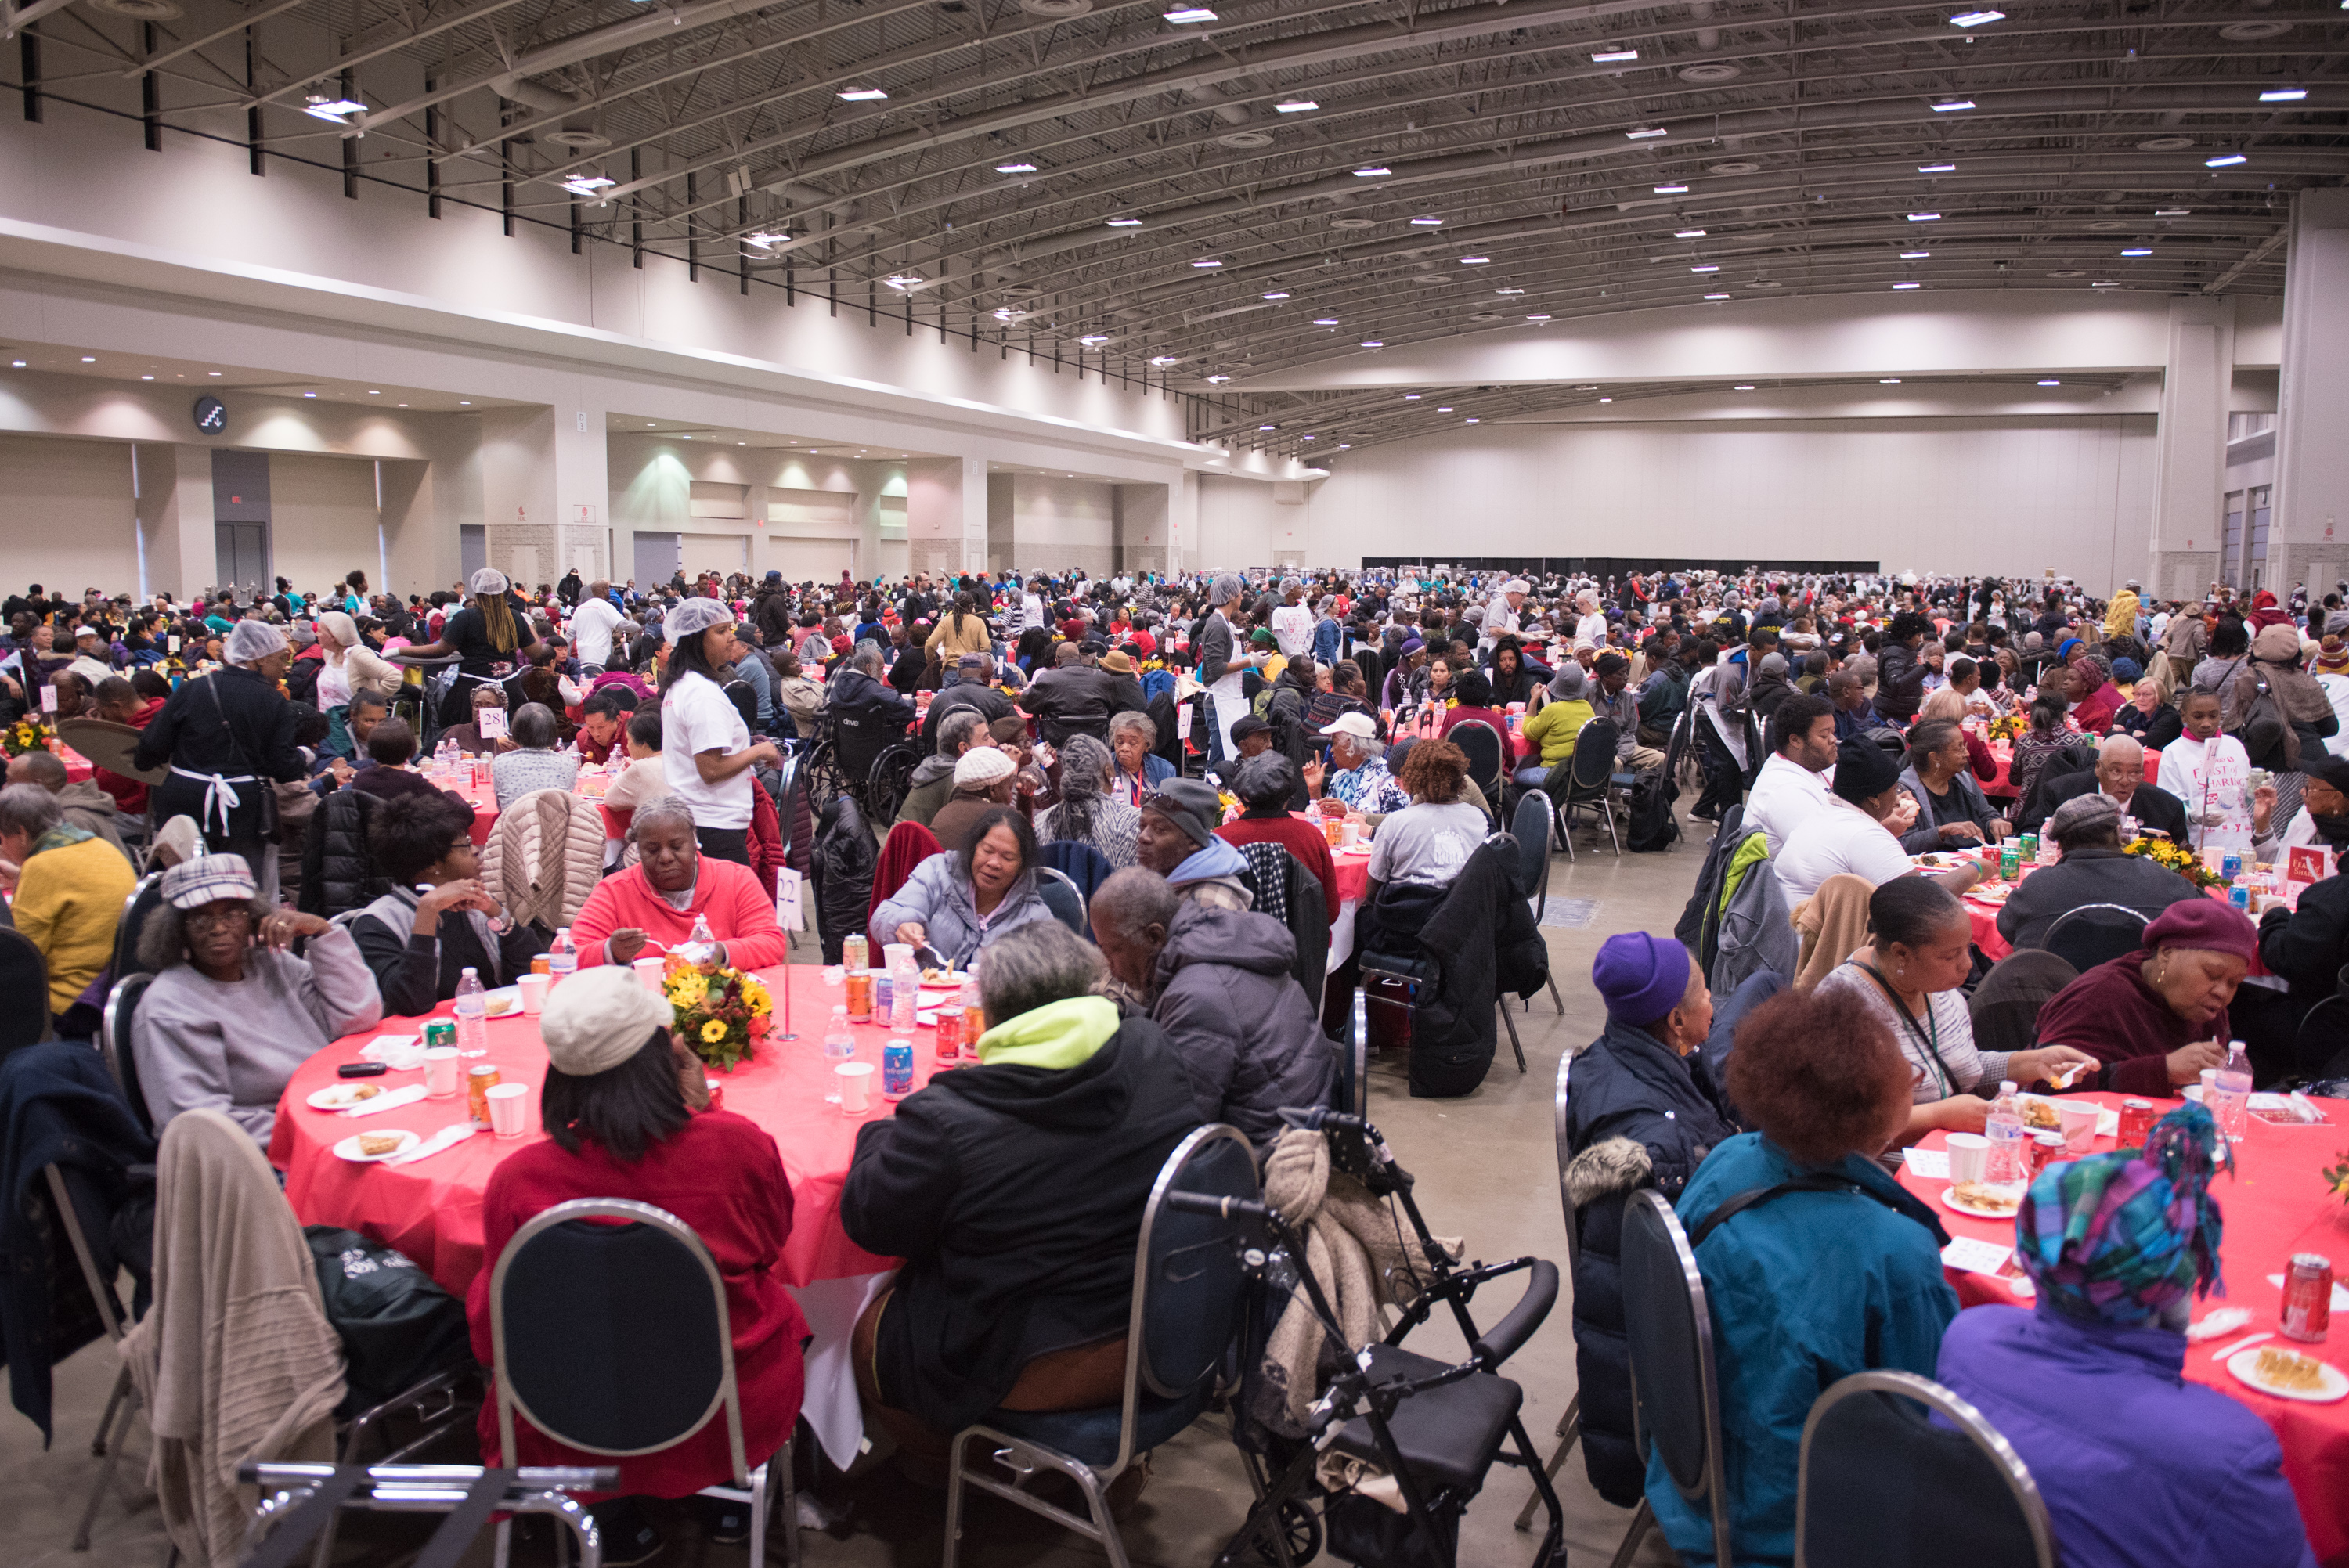 More than 5,000 city residents in need will enjoy a warm Thanksgiving meal at this year's Safeway Feast of Sharing. (Image: Courtesy Events DC)